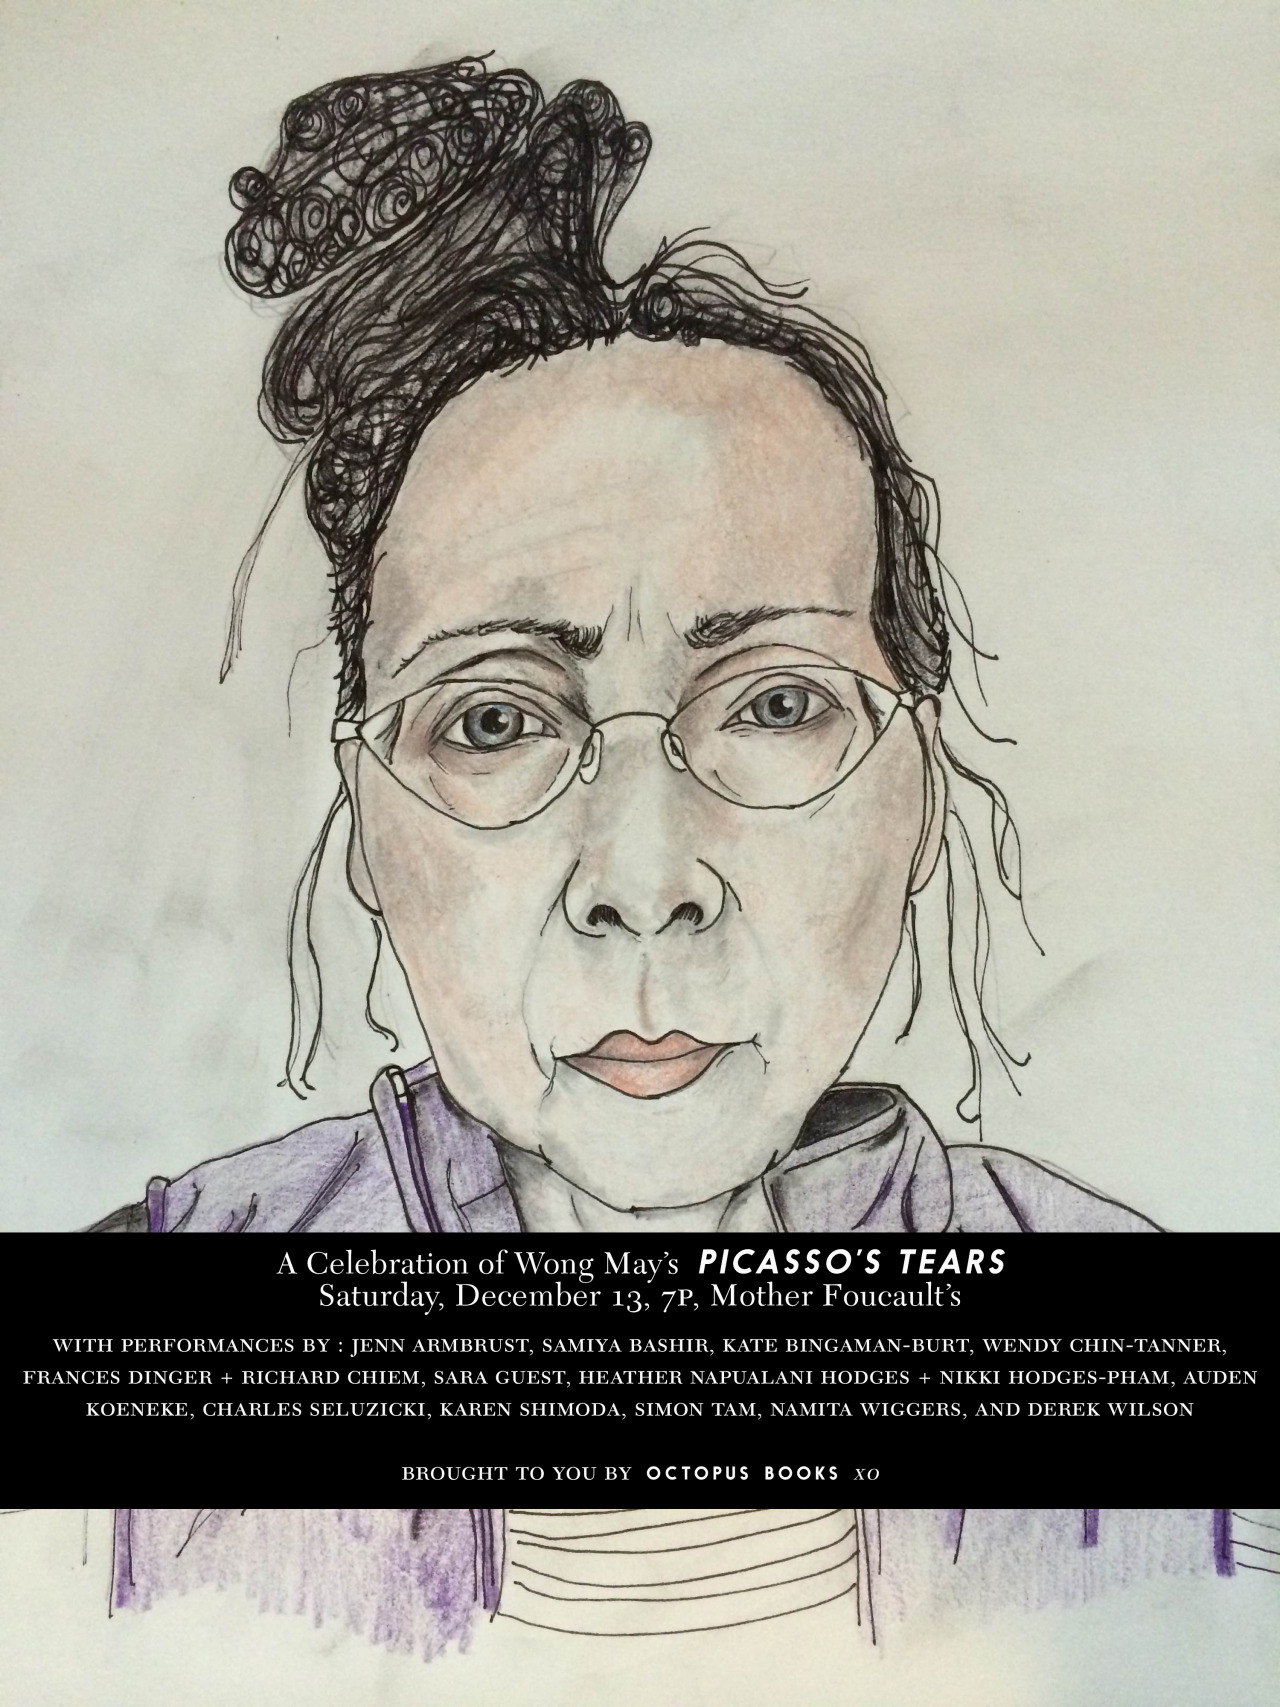 """This summer, Wong May's    Picasso's Tears: Poems 1978-2013    was published by Octopus Books,whichmarks one of the very proudest moments in our small presses' history.  Picasso's Tears is Wong May's fourth book of poems, but her first since leaving the United States in 1978.   We want to spread the news of the long-awaited return of Wong May to the poetry-reading world.        On Saturday, Dec. 13, at 7pm  at  Mother Foucault's Bookshop , we're celebrating Wong May with readings and performances by 15 of some of her most thoughtful readers.     Performing Wong May's work will be:    Jennifer Armbrust   Samiya Bashir   Kate Bingaman-Burt   Wendy Chin-Tanner   Frances Dinger and  Richard Chiem   Sara Brant Guest   Heather Napualani Hodges  and Nikki Hodges-Pham   Auden Koeneke   Charles Seluzicki  Karen McAlister Shimoda   Simon Tam  Namita Wiggers  Derek Hunter Wilson   This celebration serves as a fund-raiser for Octopus Books, so please bring some cash, and consider one of the following options at the door:  $10 donation $15 letter-pressed broadside of Wong May's """"Teaching Simone Weil to Eat a Pineapple"""" designed by Drew Swenhaugen in a limited edition of 50. $20 A limited hard cover edition of Picasso's Tears $25 Book + Broadside  Mingling starts at 7pm, and the performances will start promptly at 7:45. There will be some beer and wine available, but also please feel free to also bring your own.   An interview with Wong May in the May issue of The Believer.    Wong May at the Poetry Foundation."""